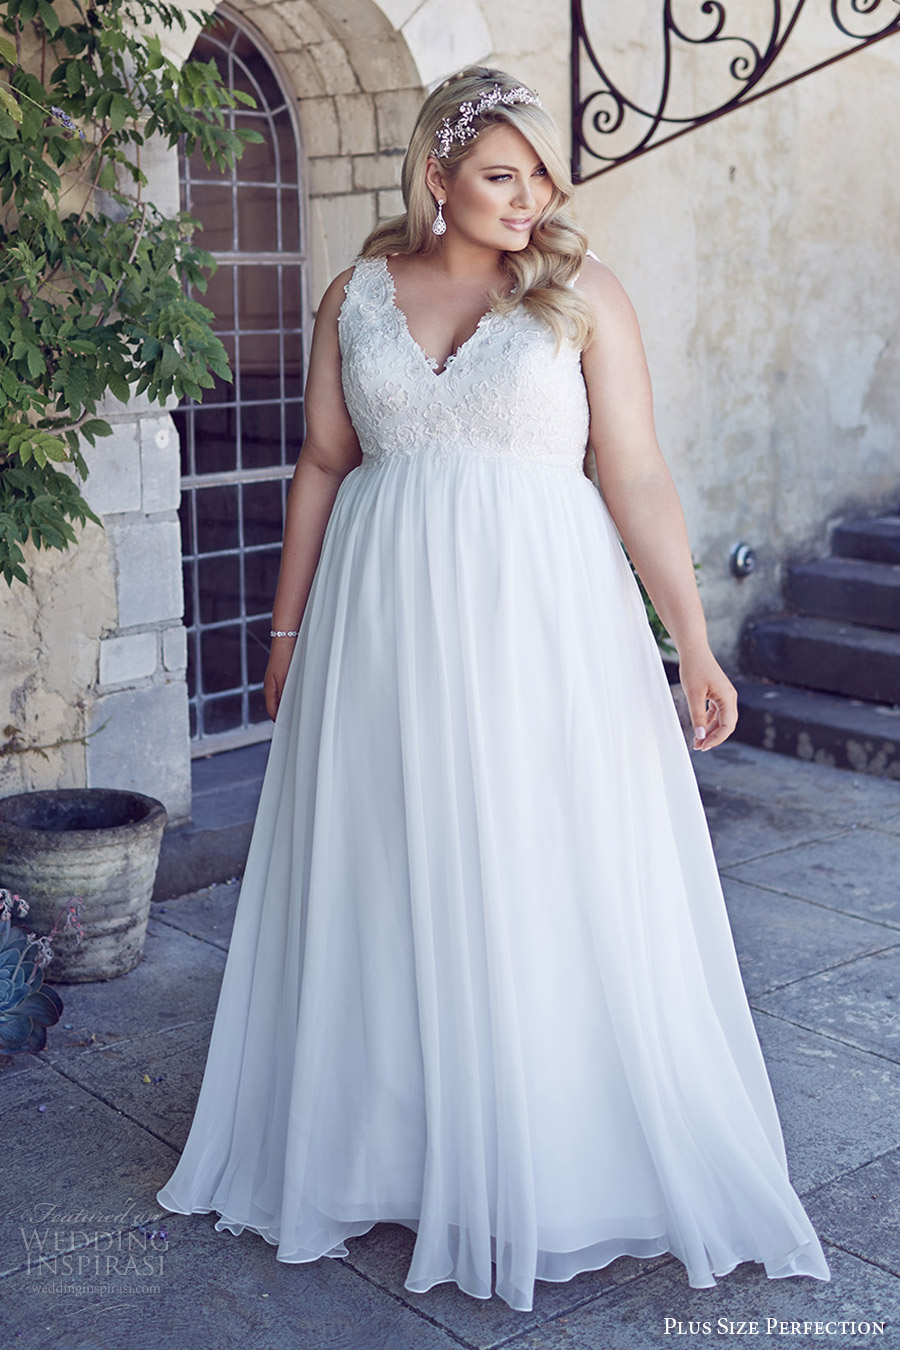 Plus size perfection wedding dresses it s a love story for Empire waist plus size wedding dress